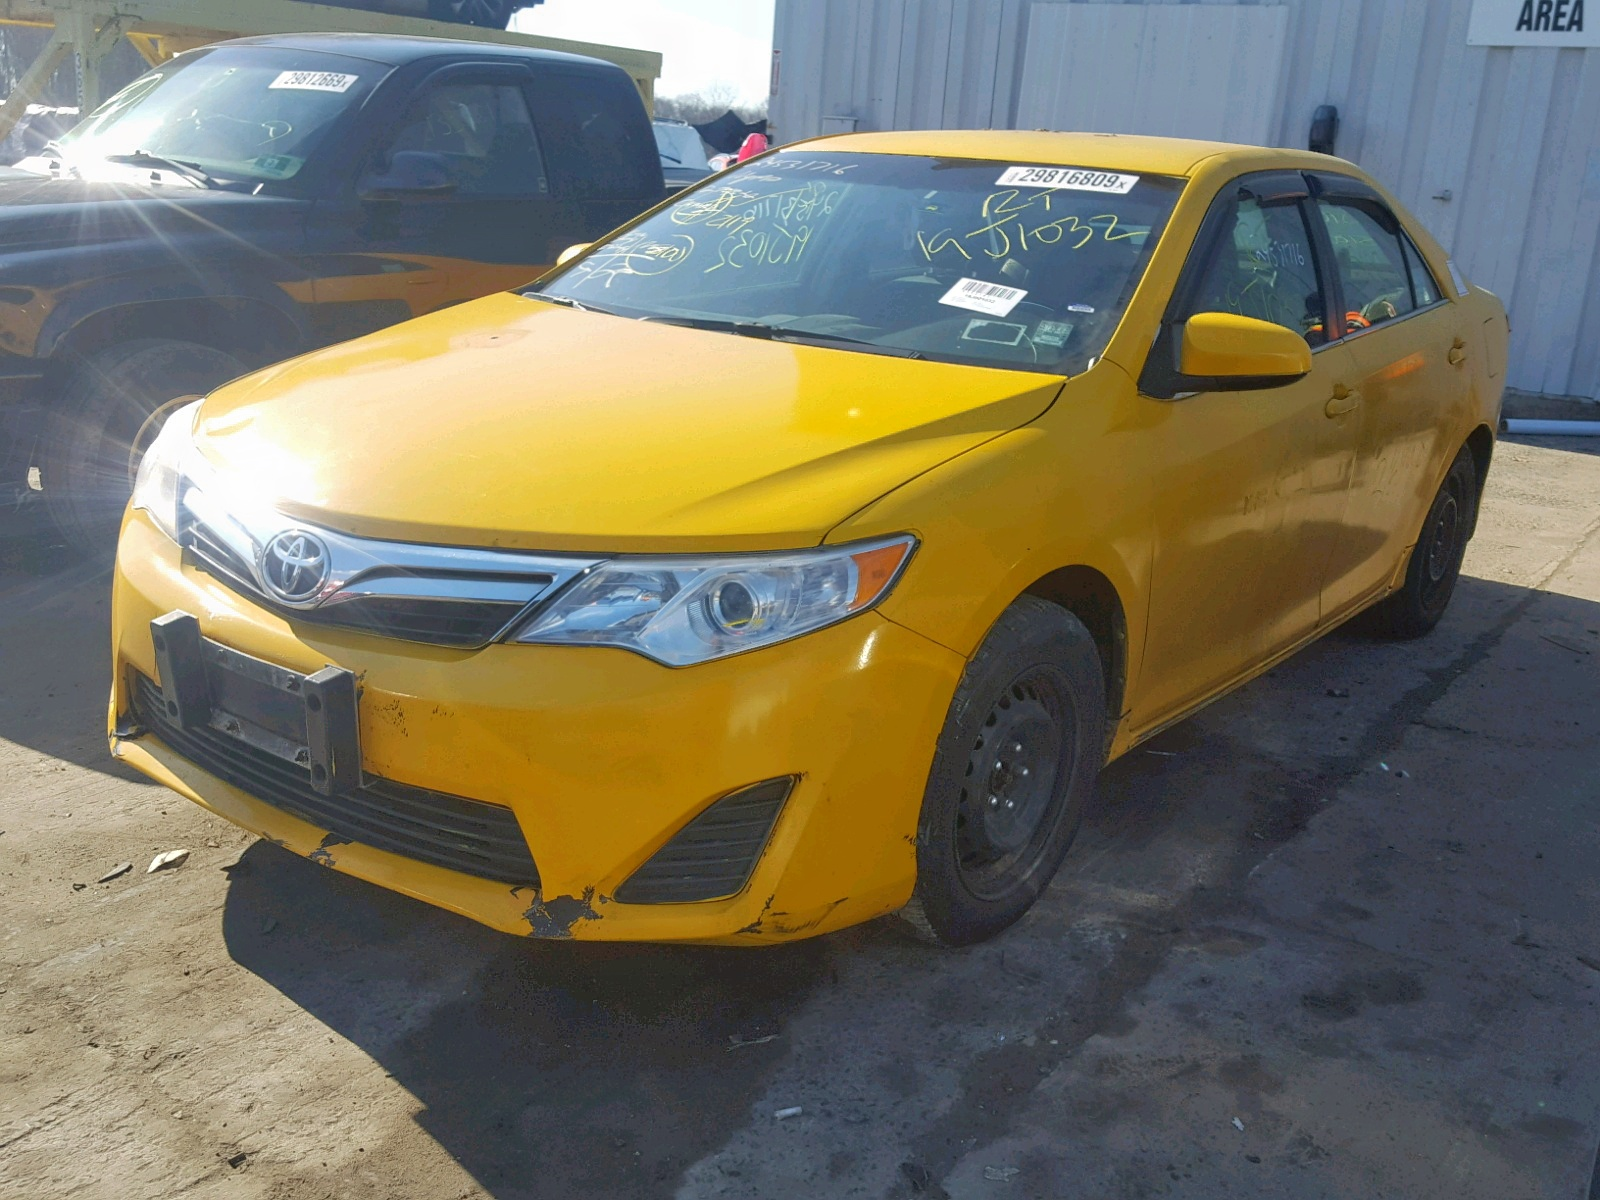 2012 Toyota Camry Hybr 2.5L Right View